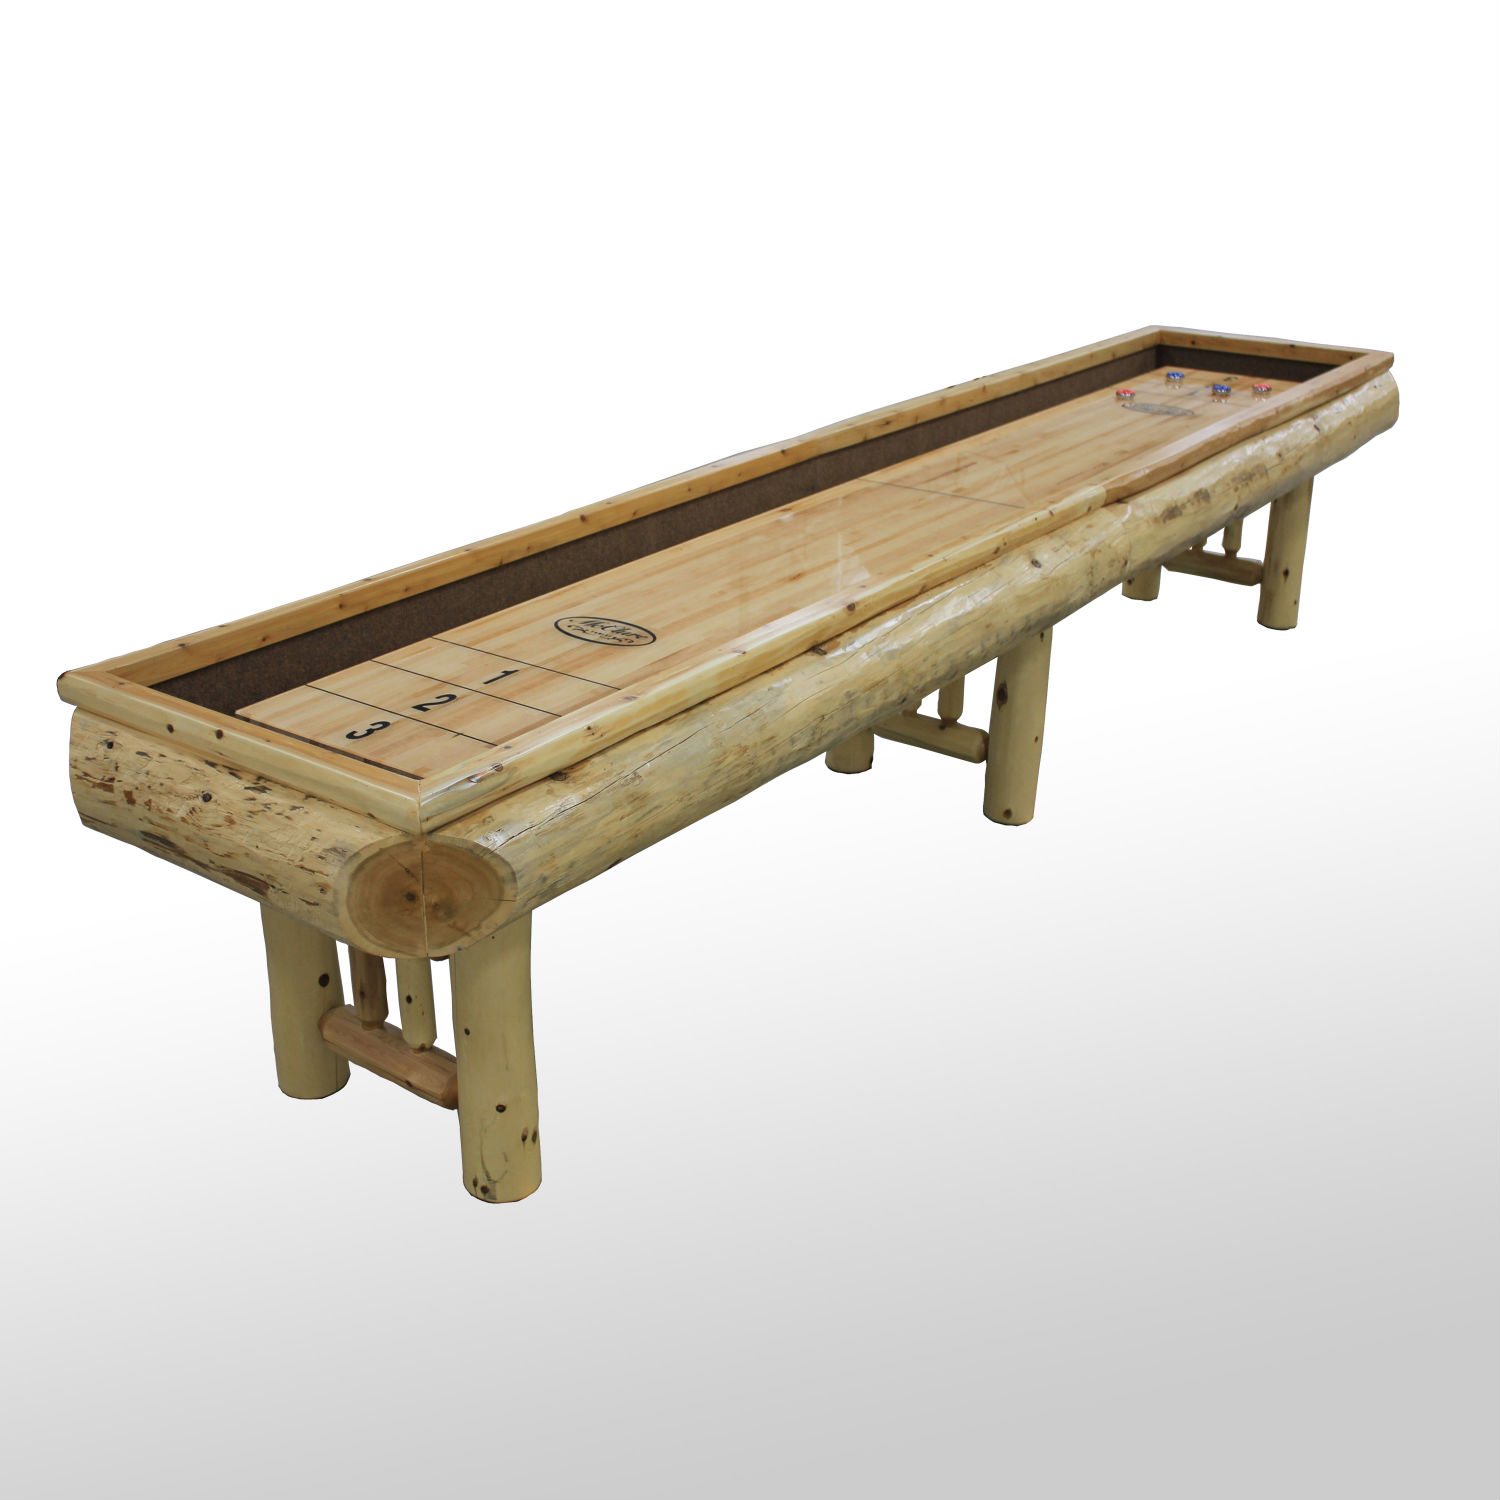 with pictures step shuffleboard wikihow sale for table to make a how